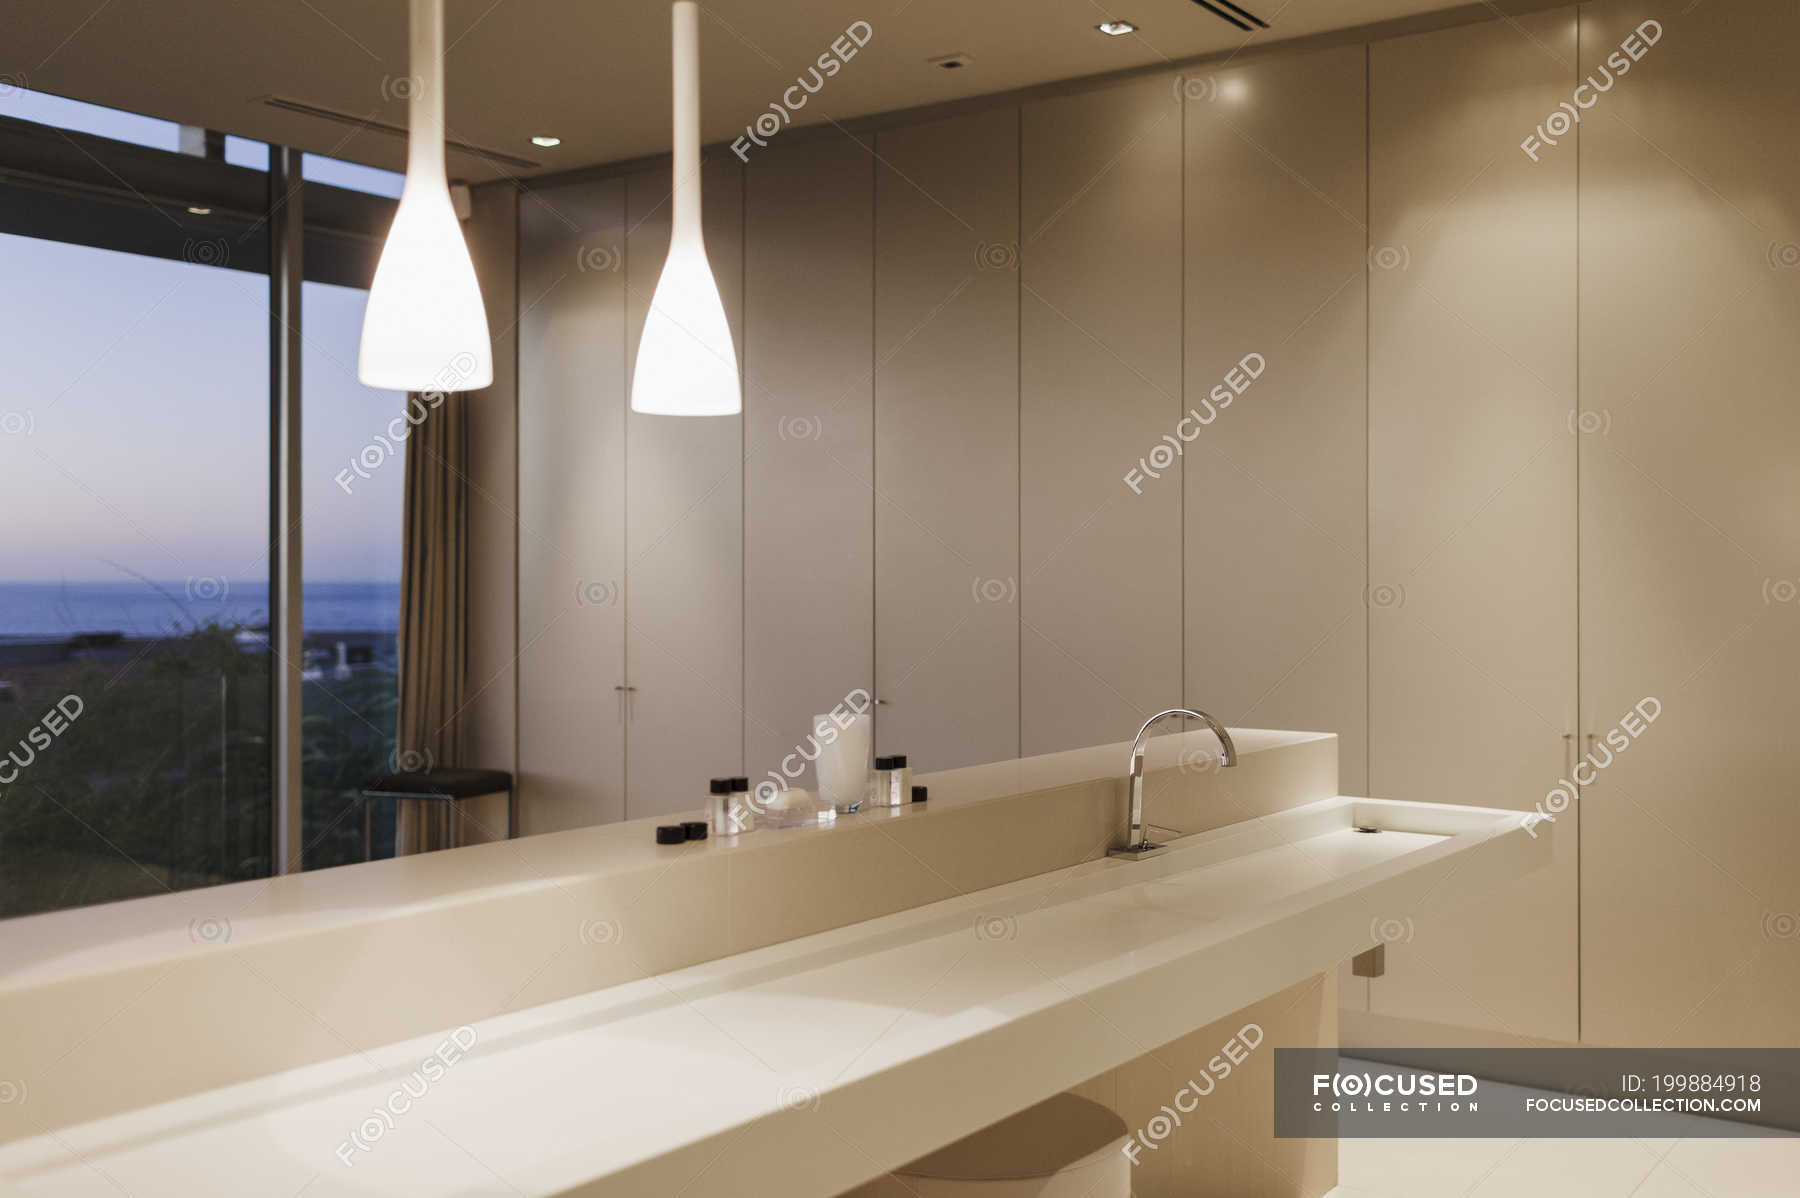 Sink and pendant lights in modern bathroom — Stock Photo   #199884918